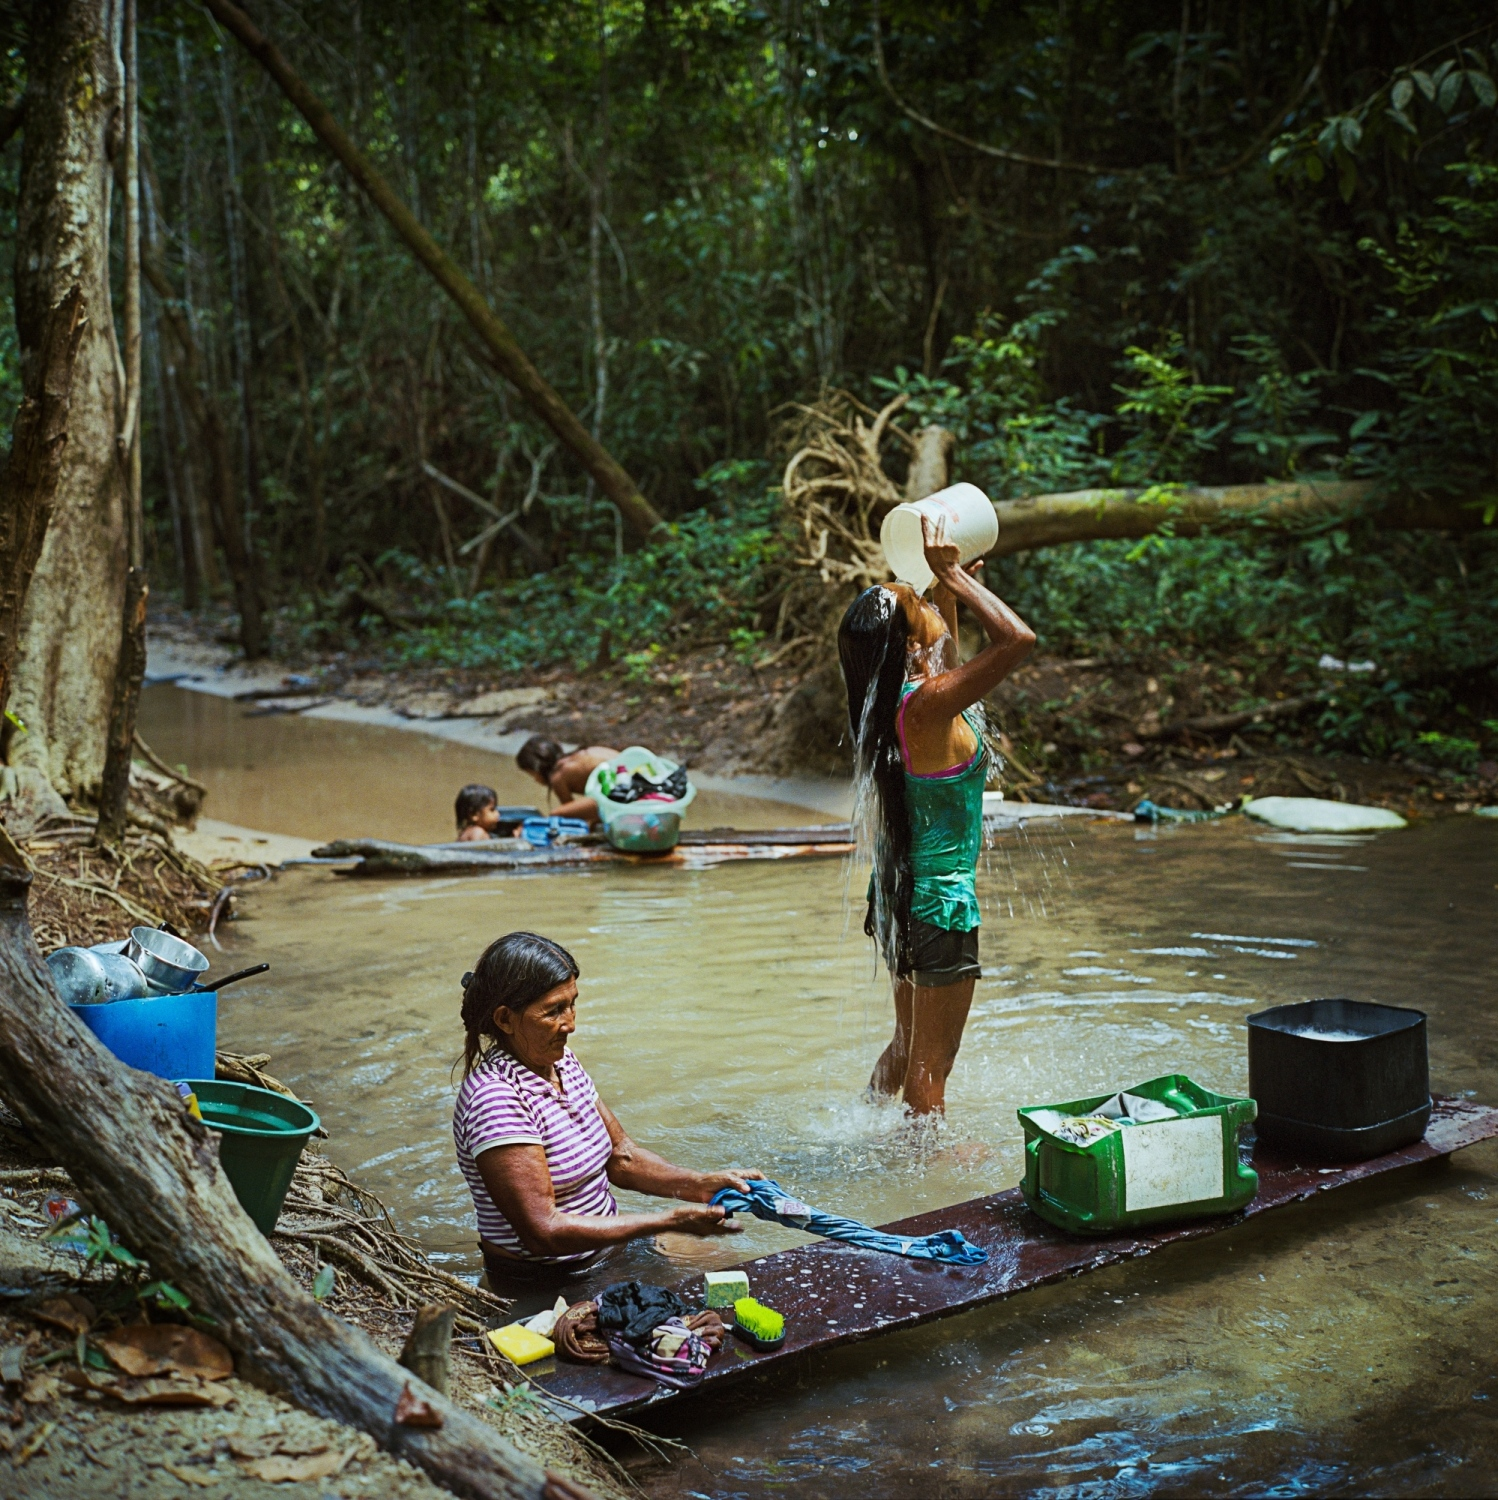 2014.  Munduruku women bathe and do laundry in a creek by the village of Sawre Muybu. Their land was recently demarcated by the Bazilian government after years of fighting for recognition of their territory on the Tapjos River once known as Mundurukânia. The demarcation led to the cacelling of government plans to construct a MegaDam that would have flooded much of their traditional lands in Para State, Brazil. 40 other dams are still planned and being built on the Tapajos River Basin impacting sacred sites and the rivers health. The dams are part of Brazil's Growth Acceleration Programme (PAC), which also includes a rapid expansion of soy production and mining in the gold rich region.  /Aaron Vincent Elkaim